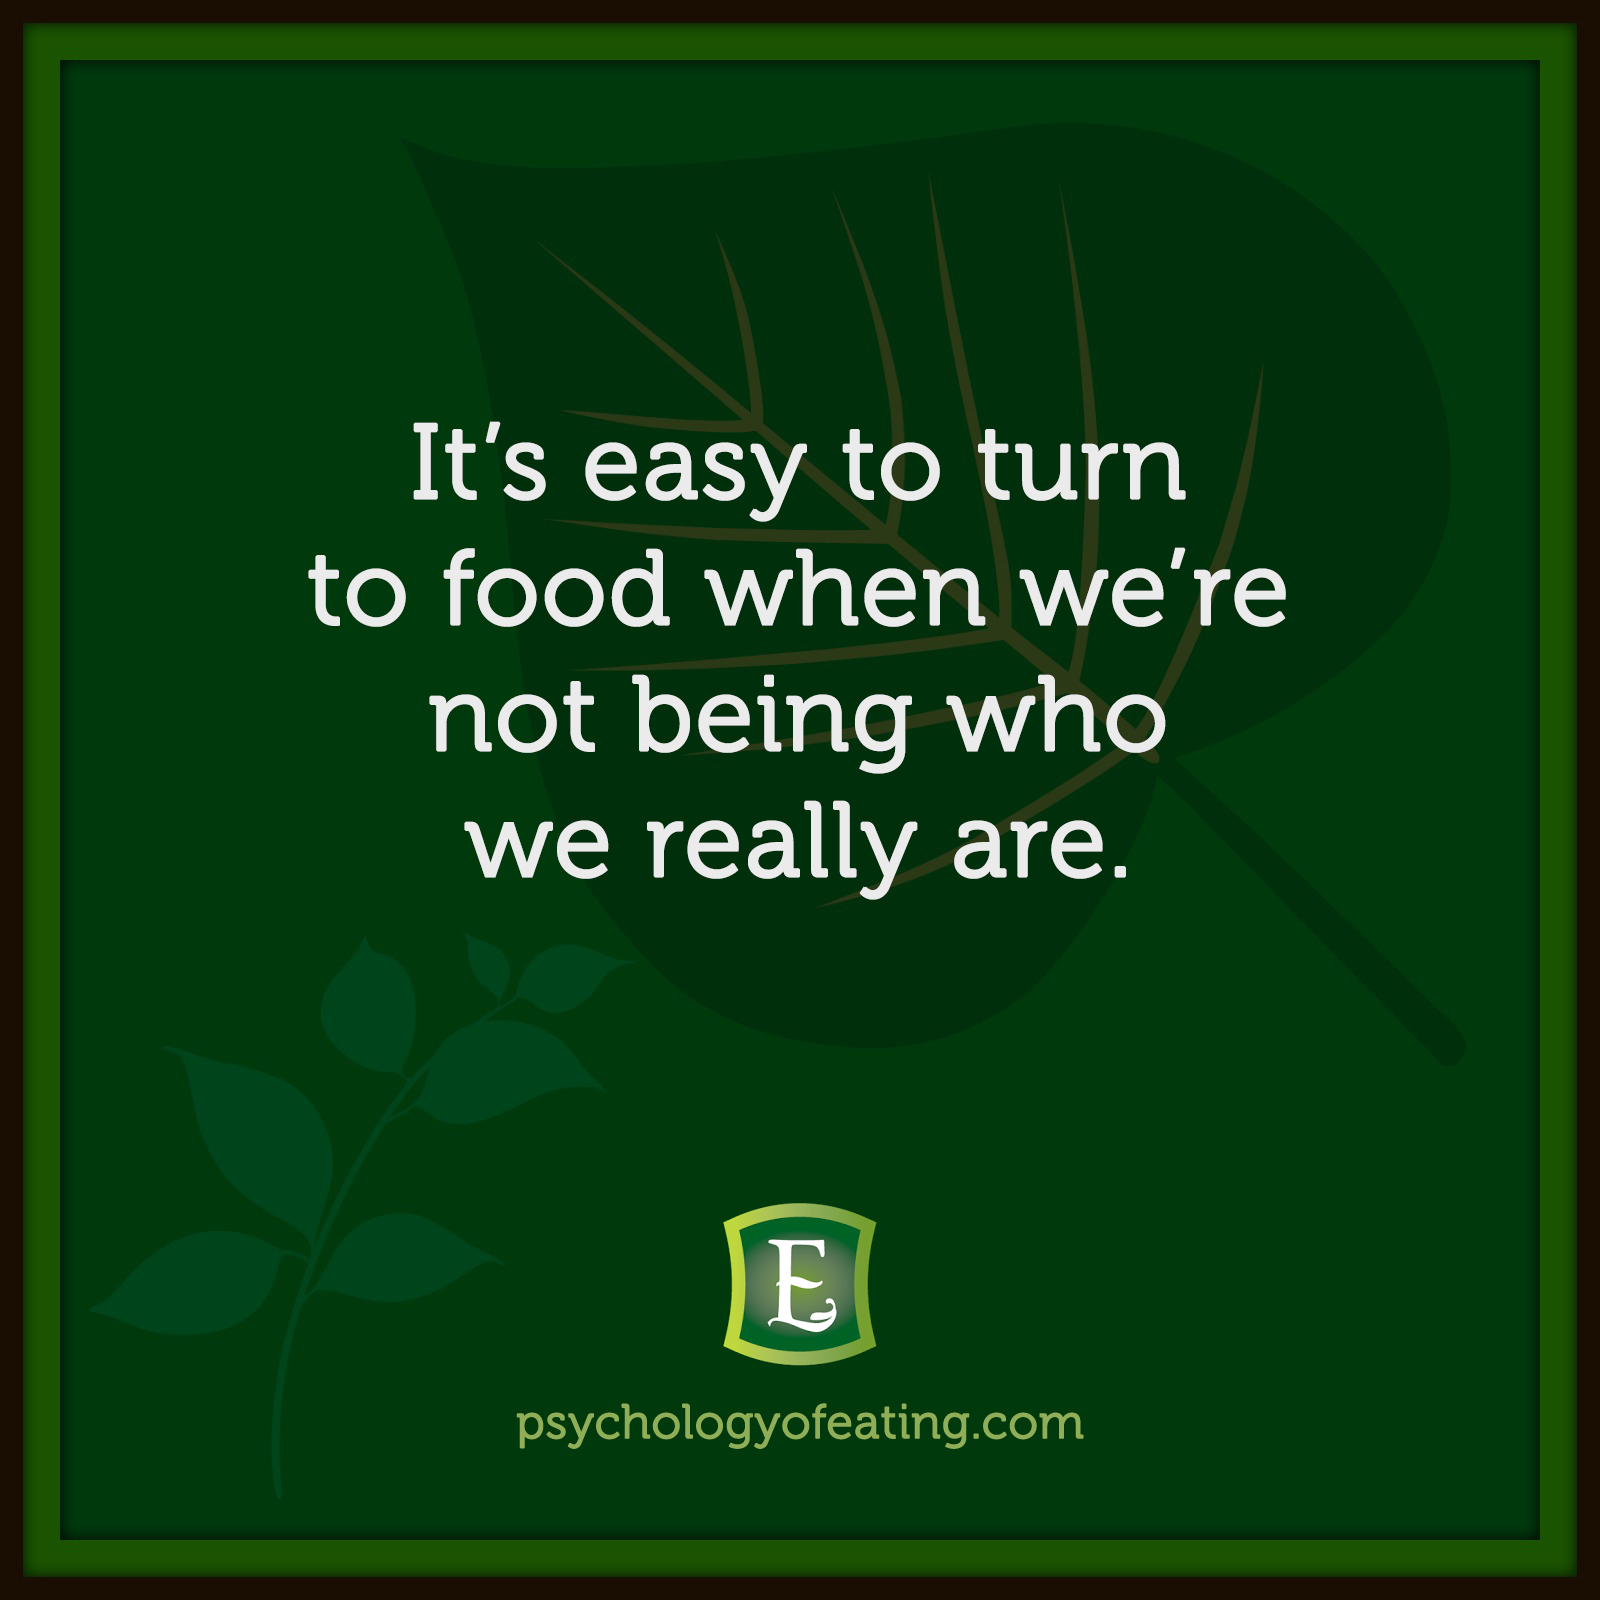 It's easy to turn to food when we're not being who we really are #health #nutrition #eatingpsychology #IPE